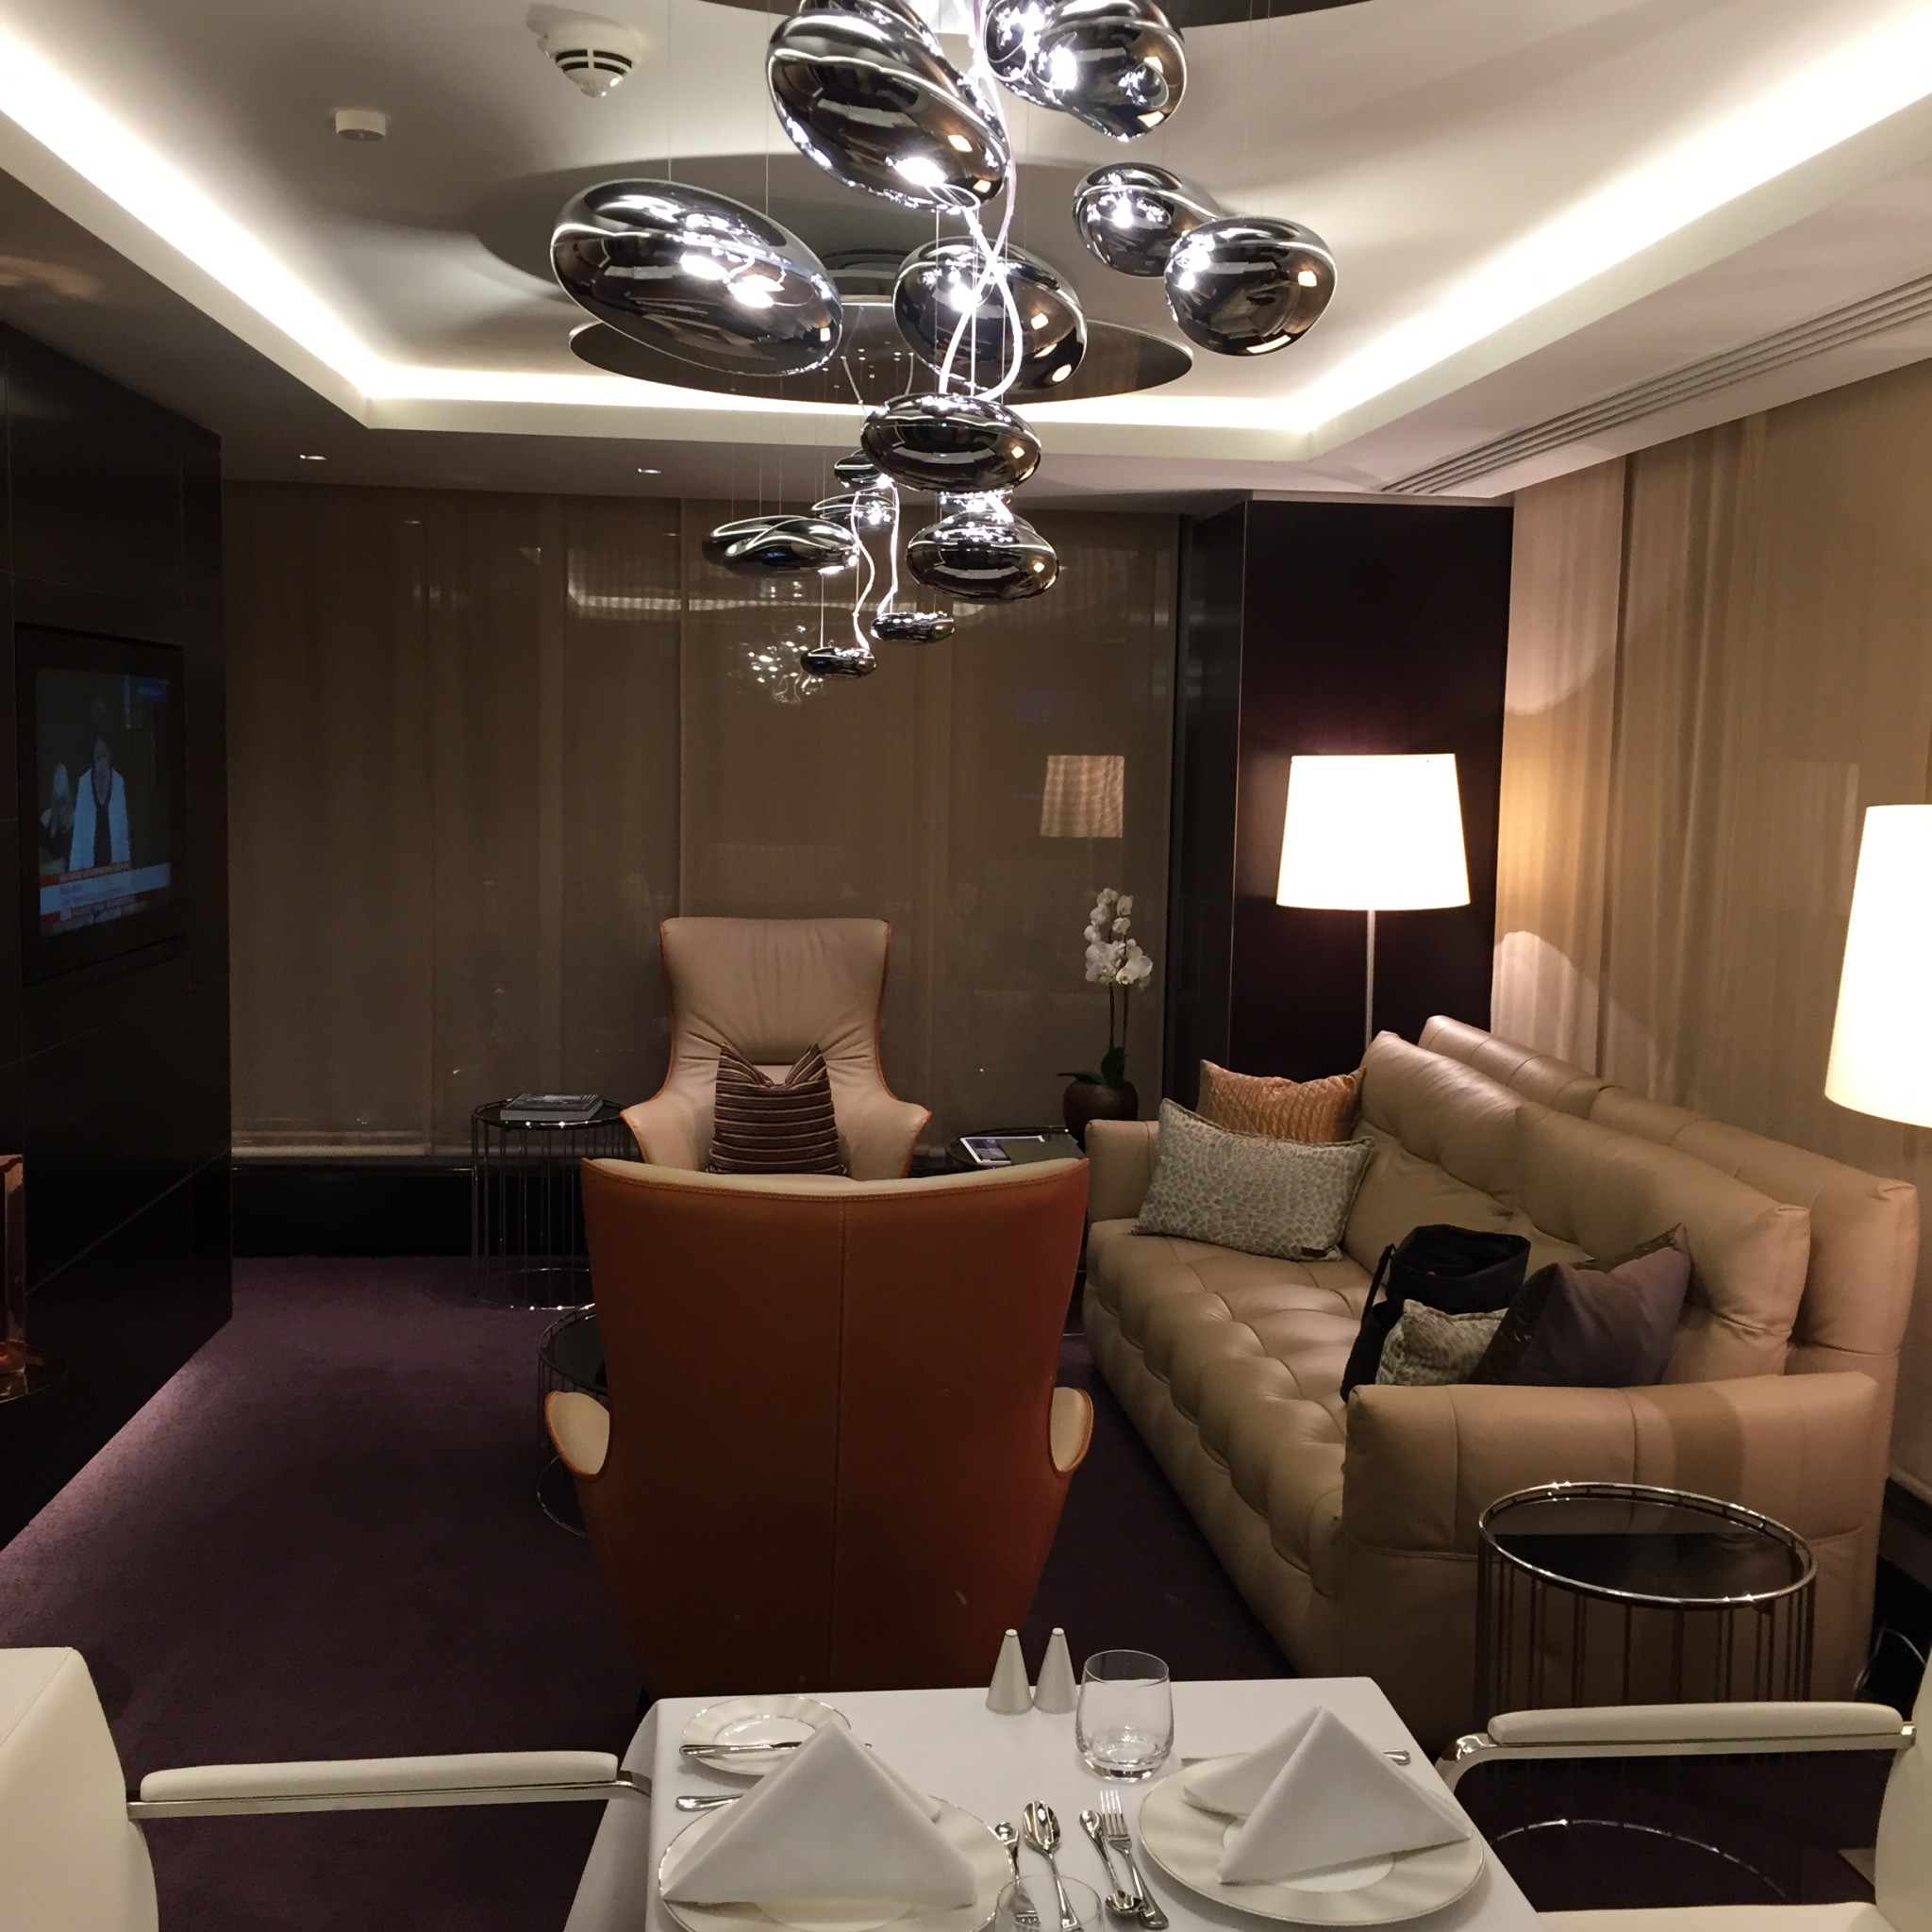 Private Suite In The Airport Lounge